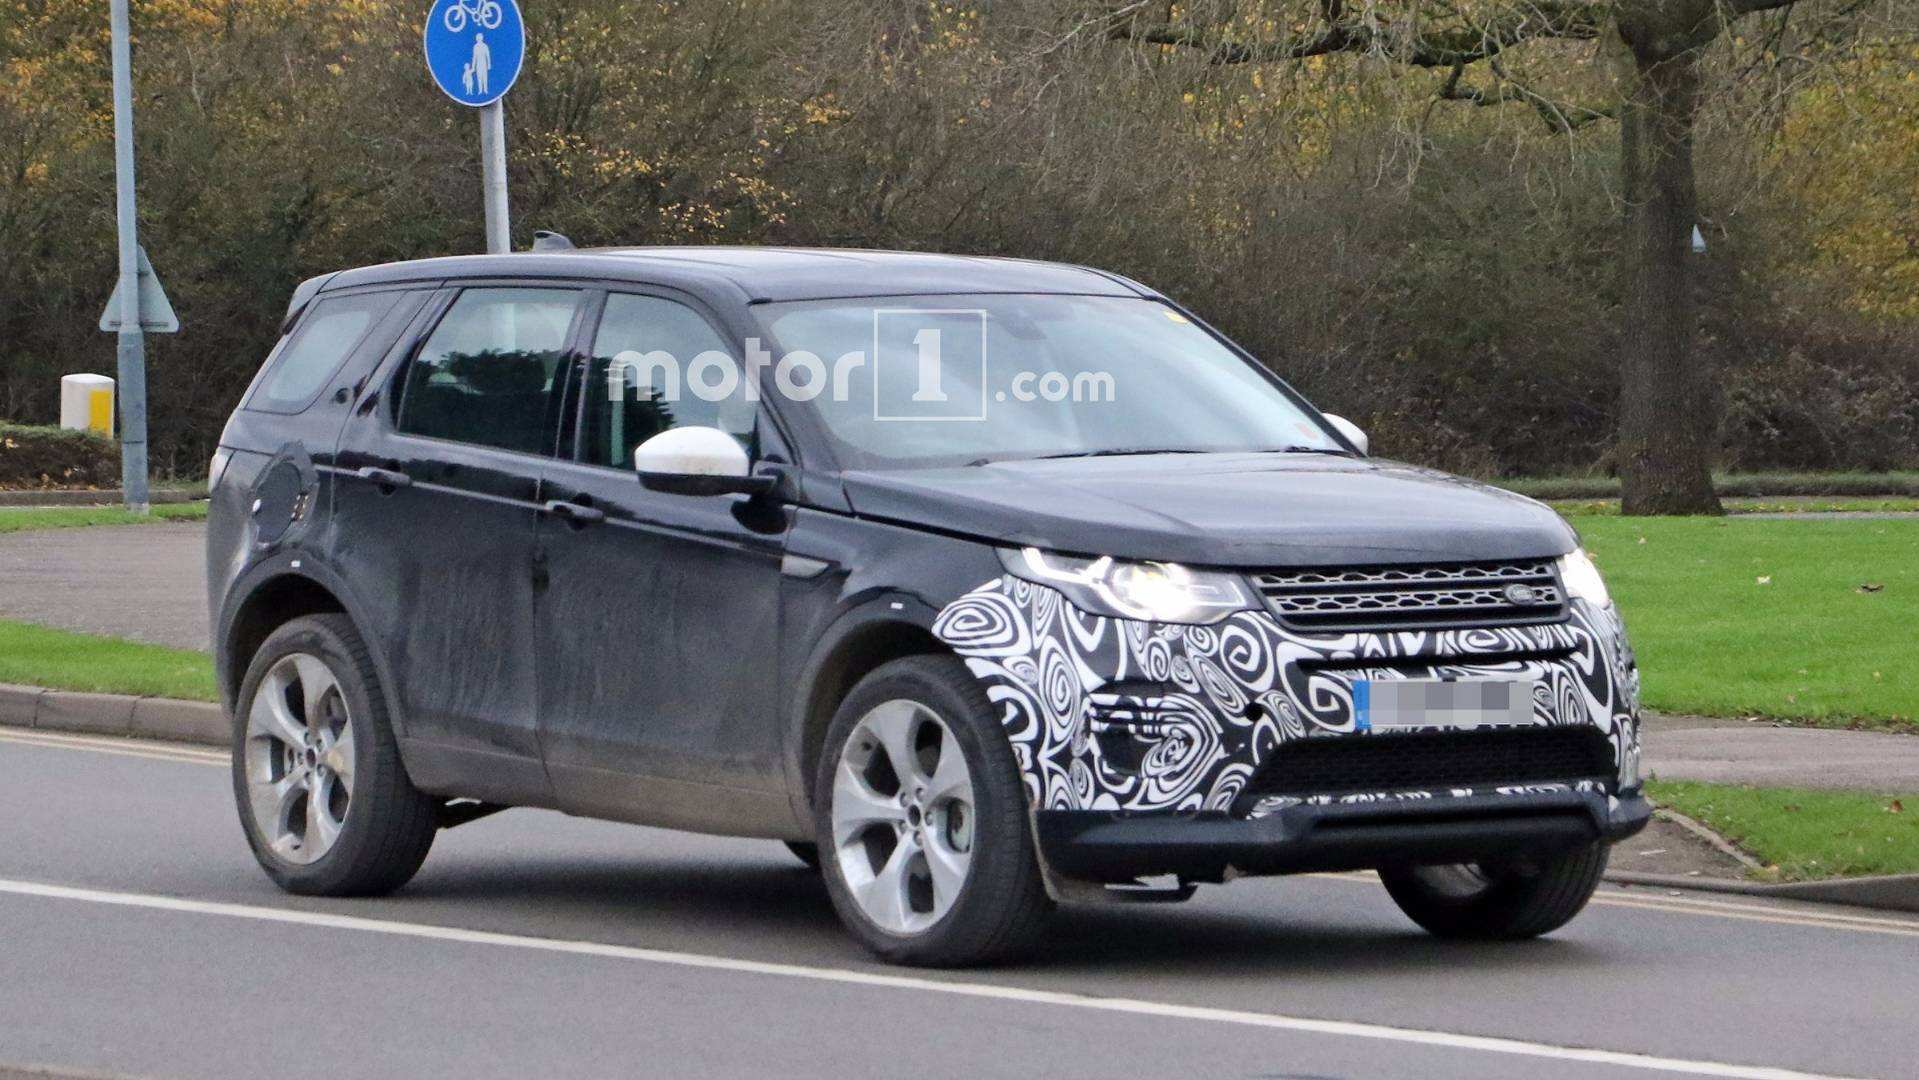 51 New 2020 Land Rover Discovery Sport Rumors with 2020 Land Rover Discovery Sport